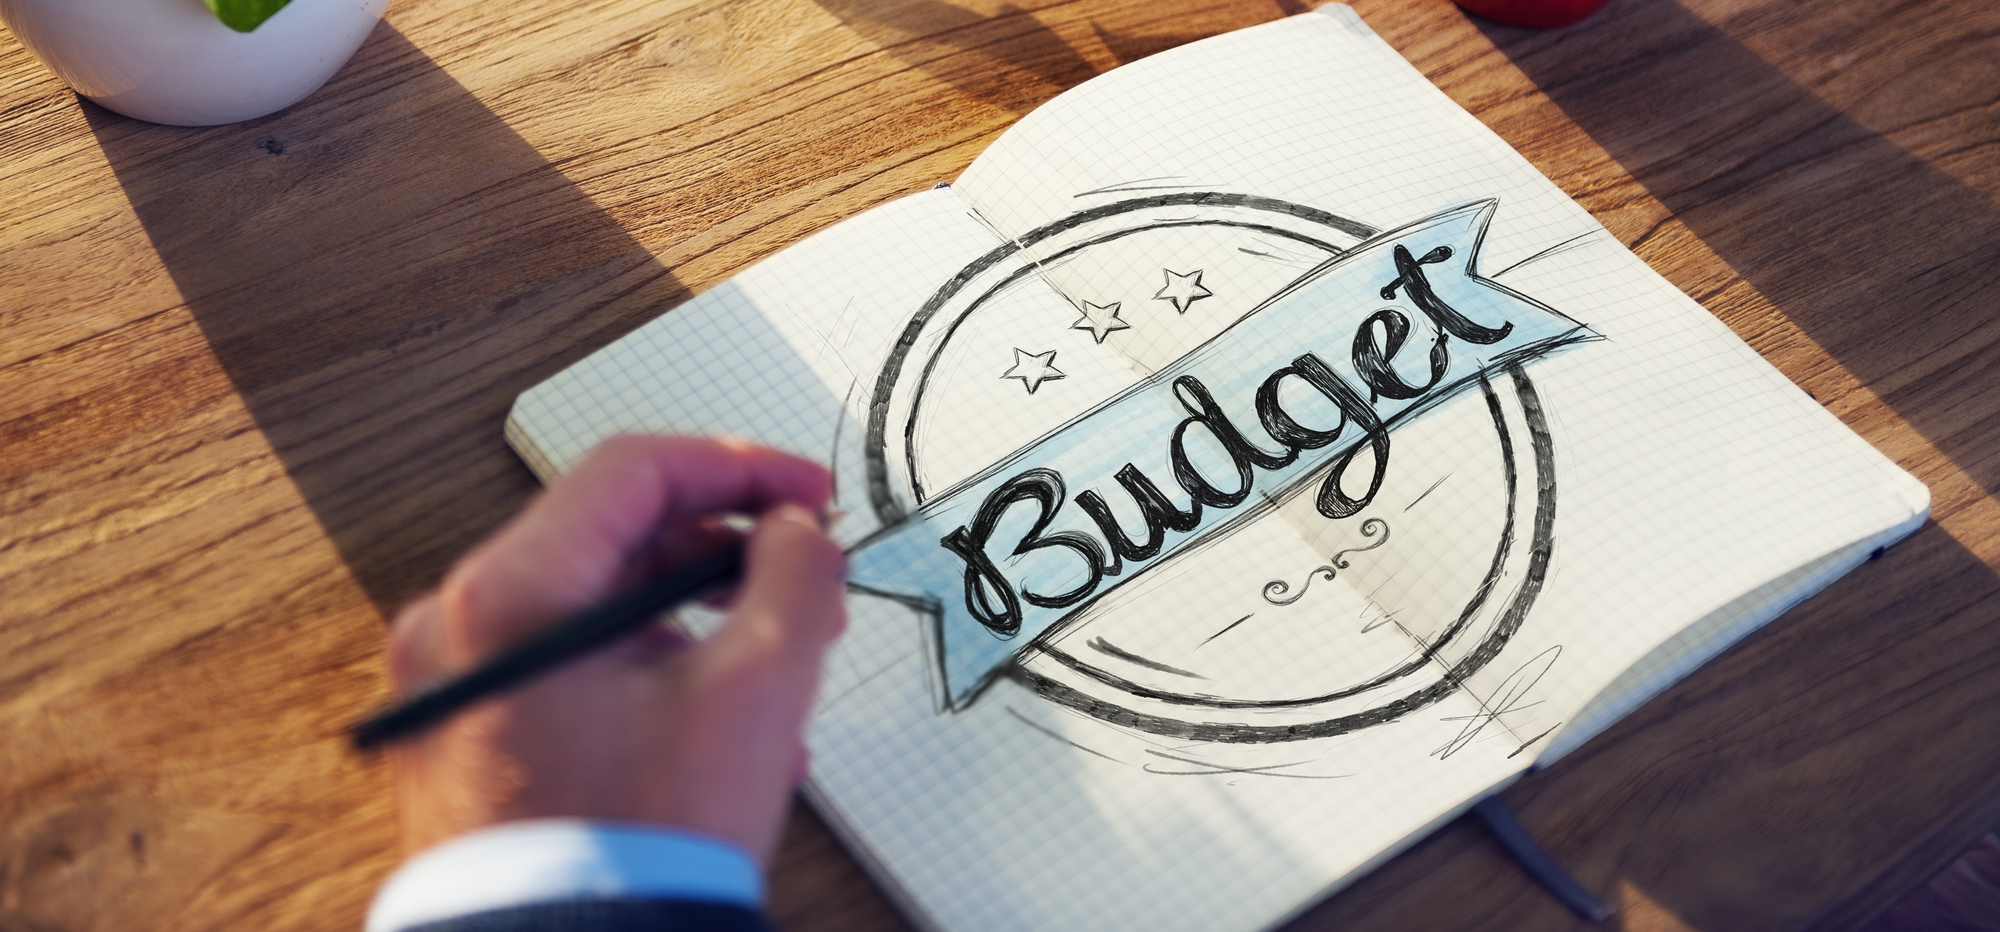 Mobile App Budget Mistakes